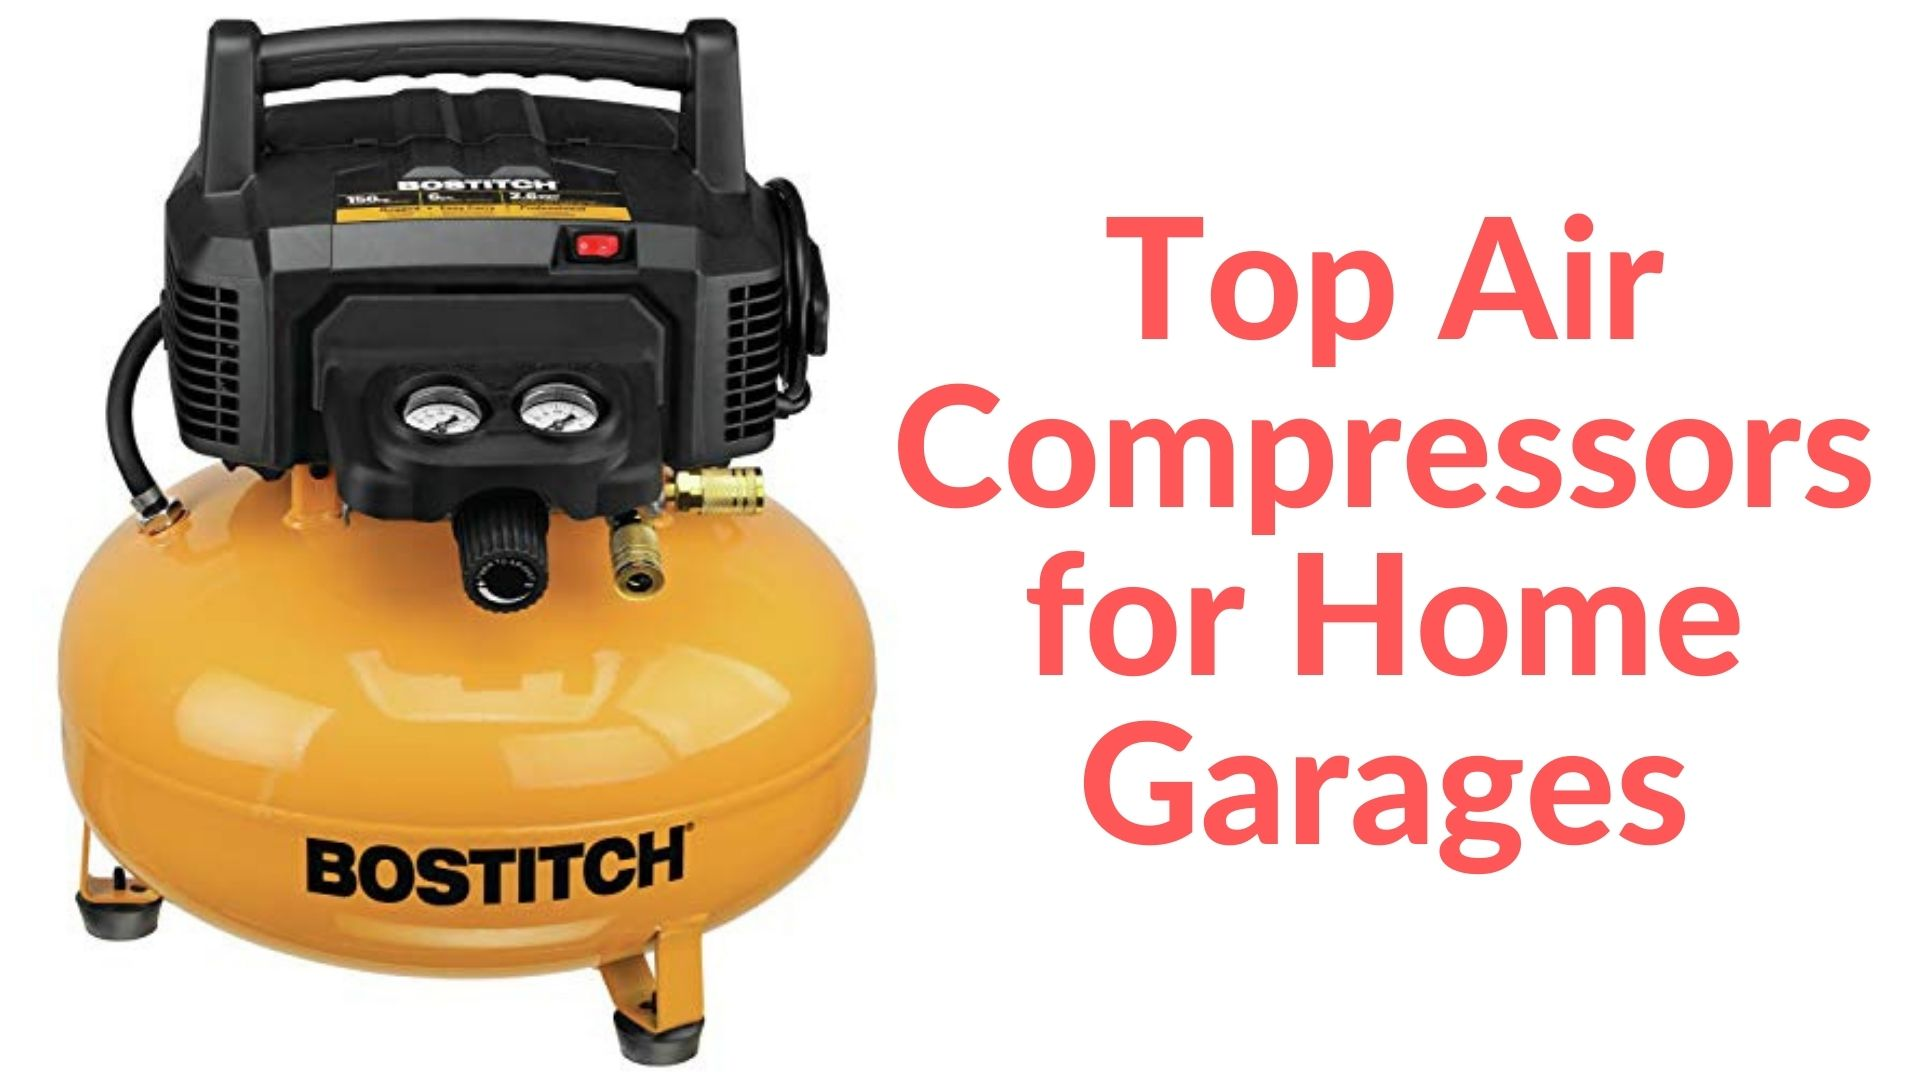 Top Air Compressors for Home Garages